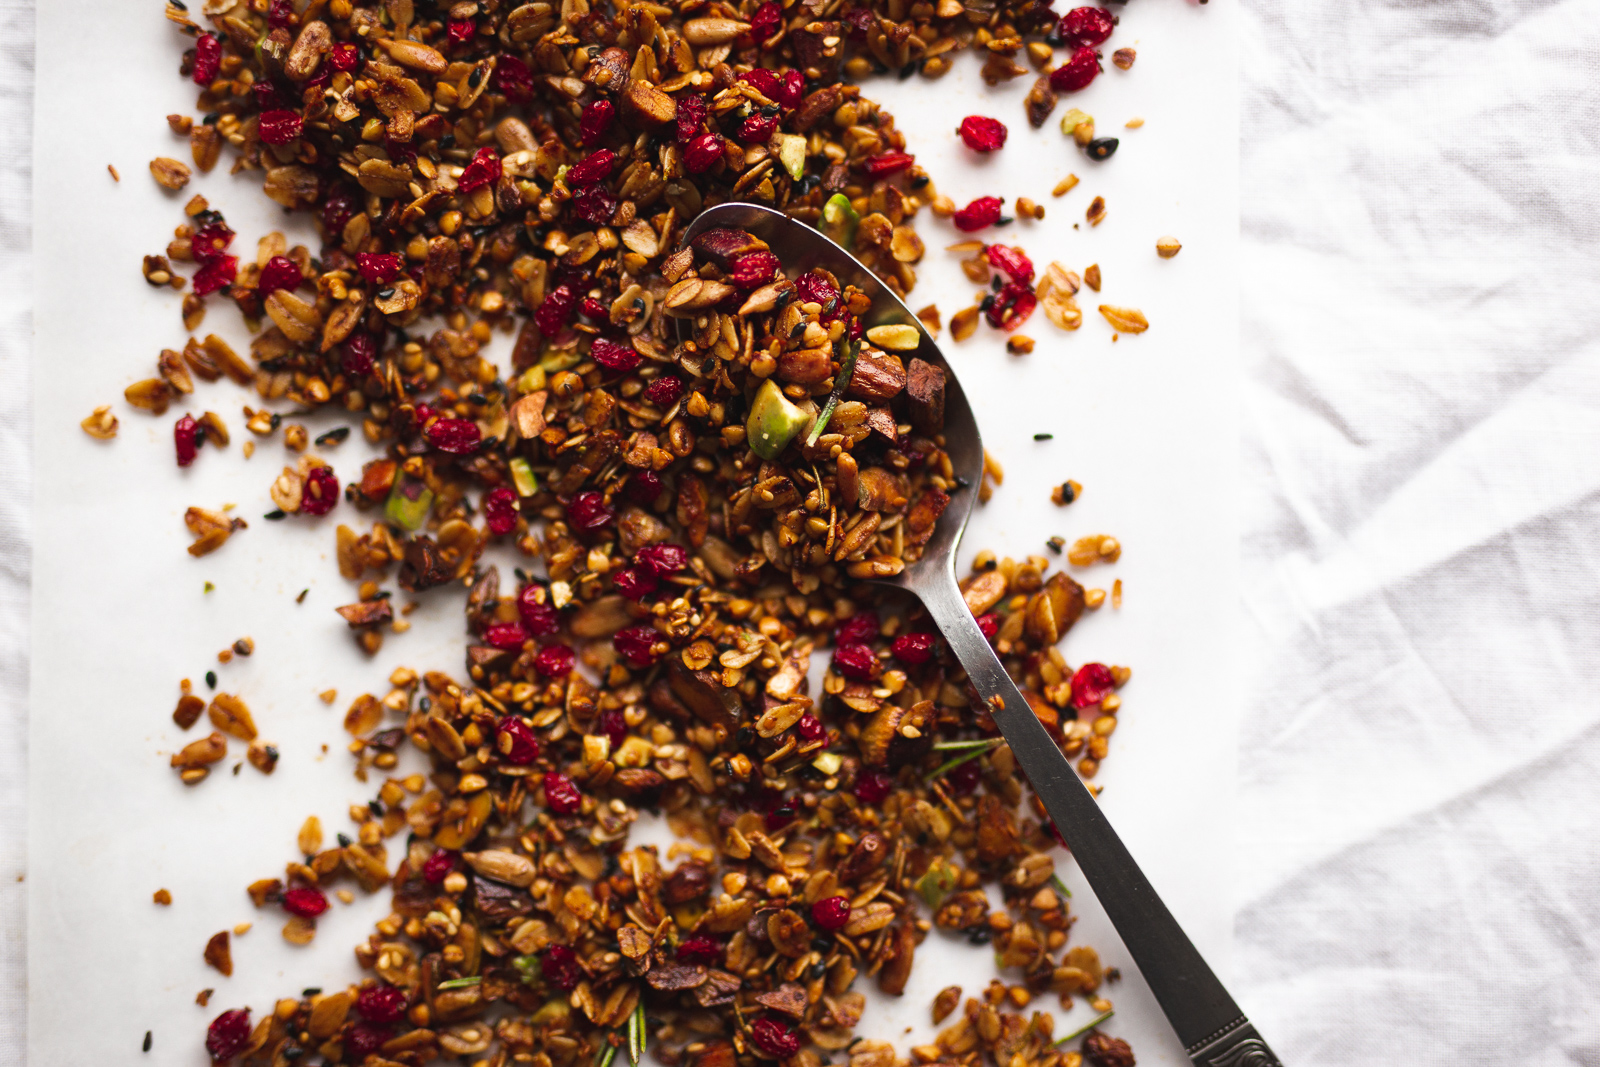 Savoury granola: pistachio, sunflower/sesame/hemp seeds, barberry, rosemary, lemon.